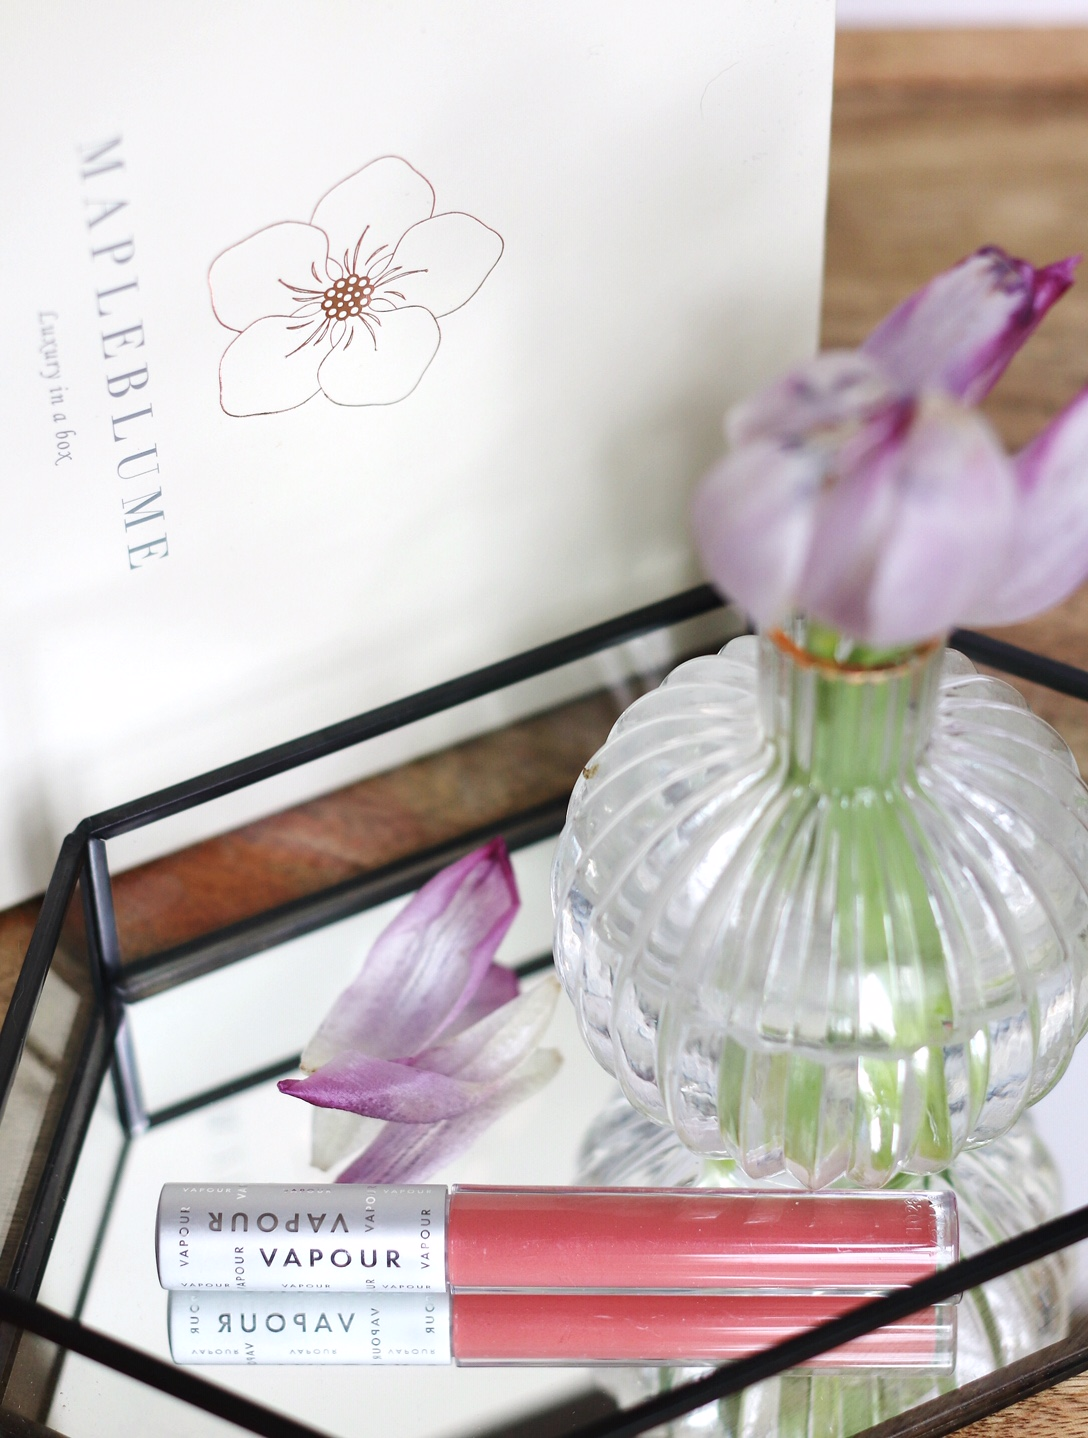 Mapleblume May Vapour elixir lip gloss in Trust